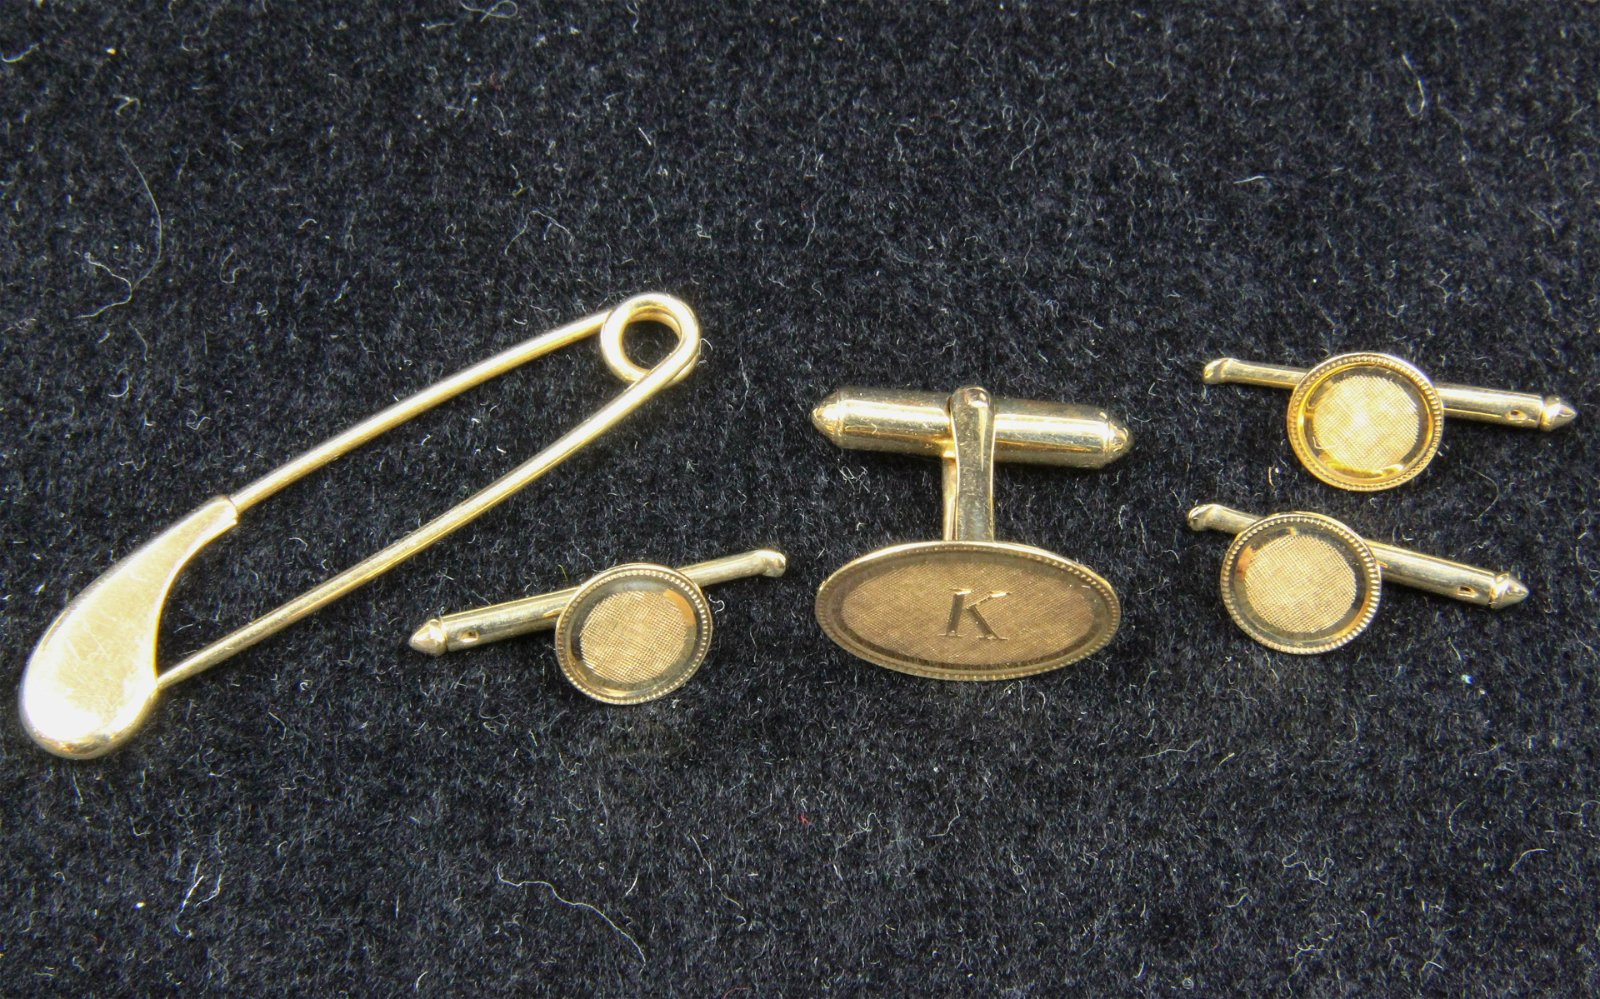 14k gold button set and safety pin